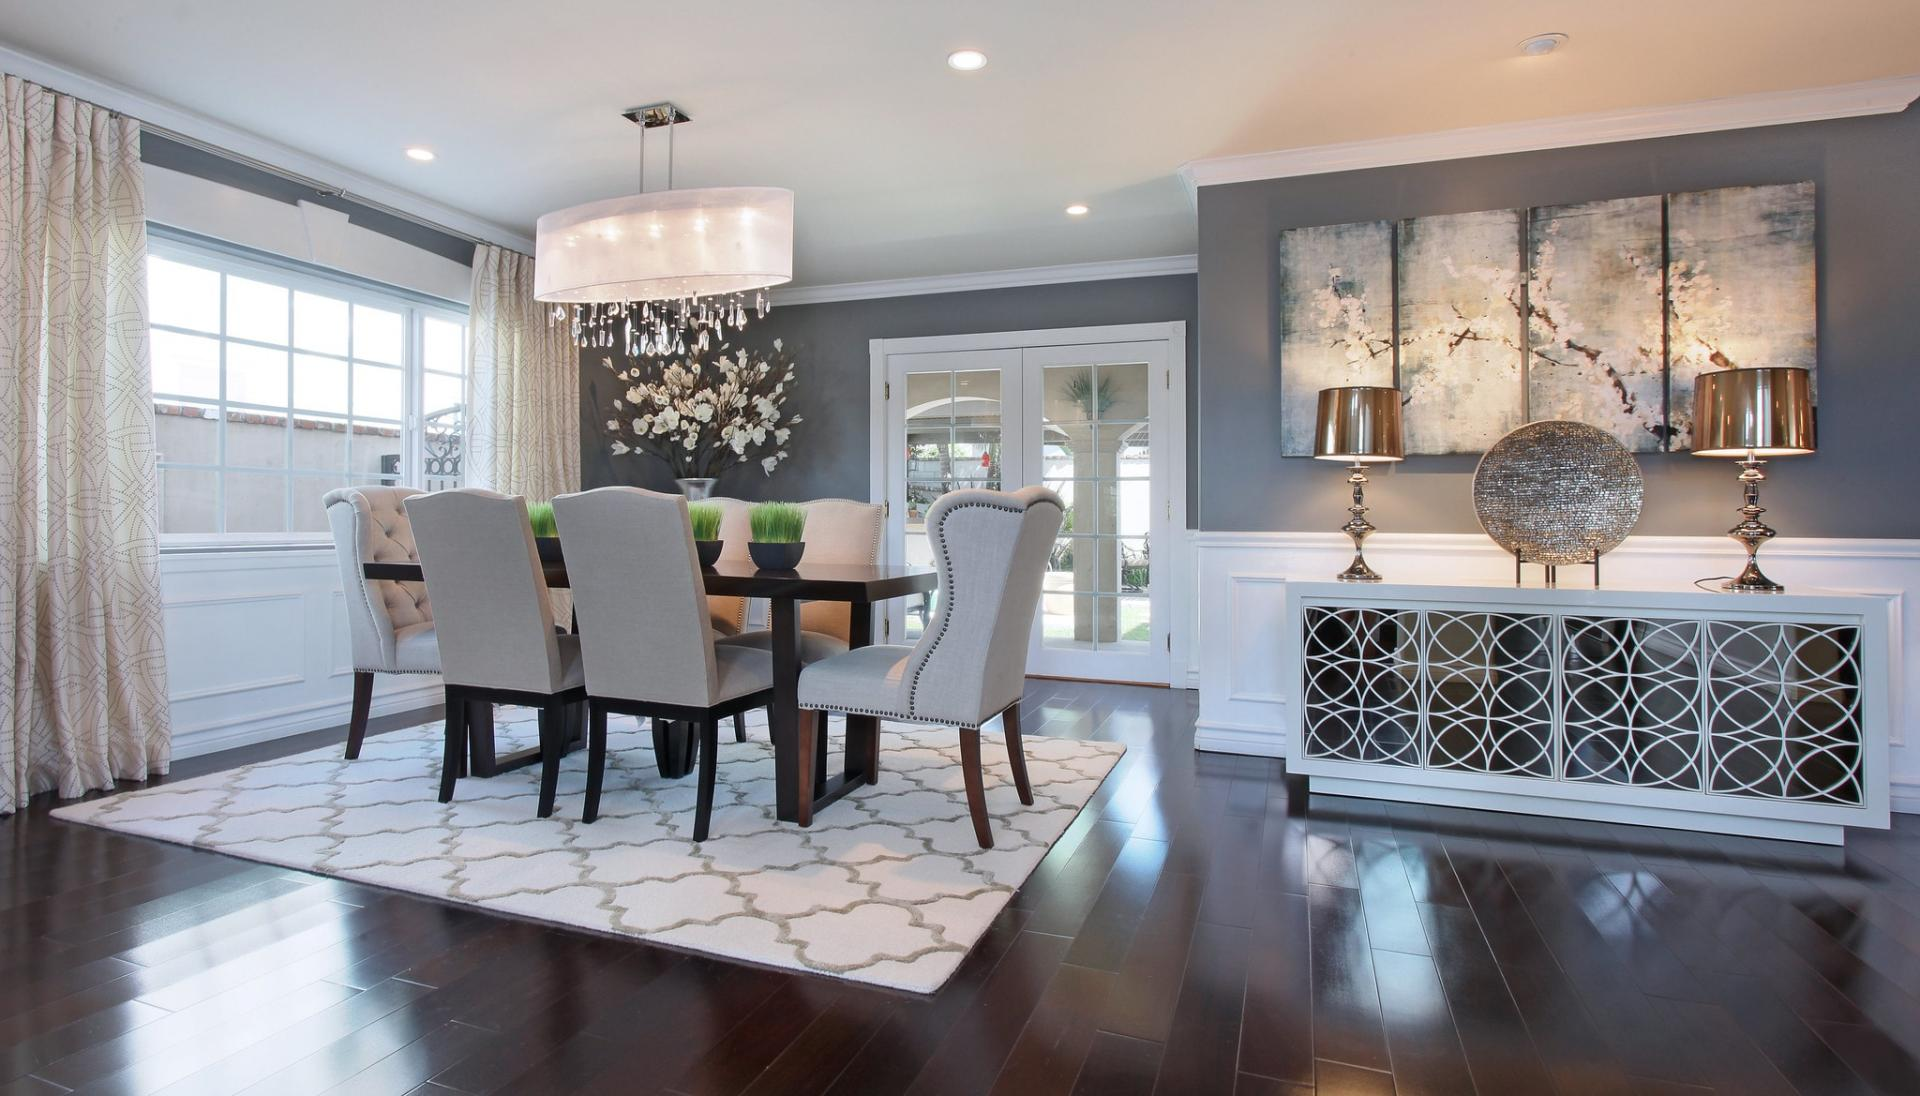 17 Marvelous Gray Dining Room Ideas Rhythm Of The Home